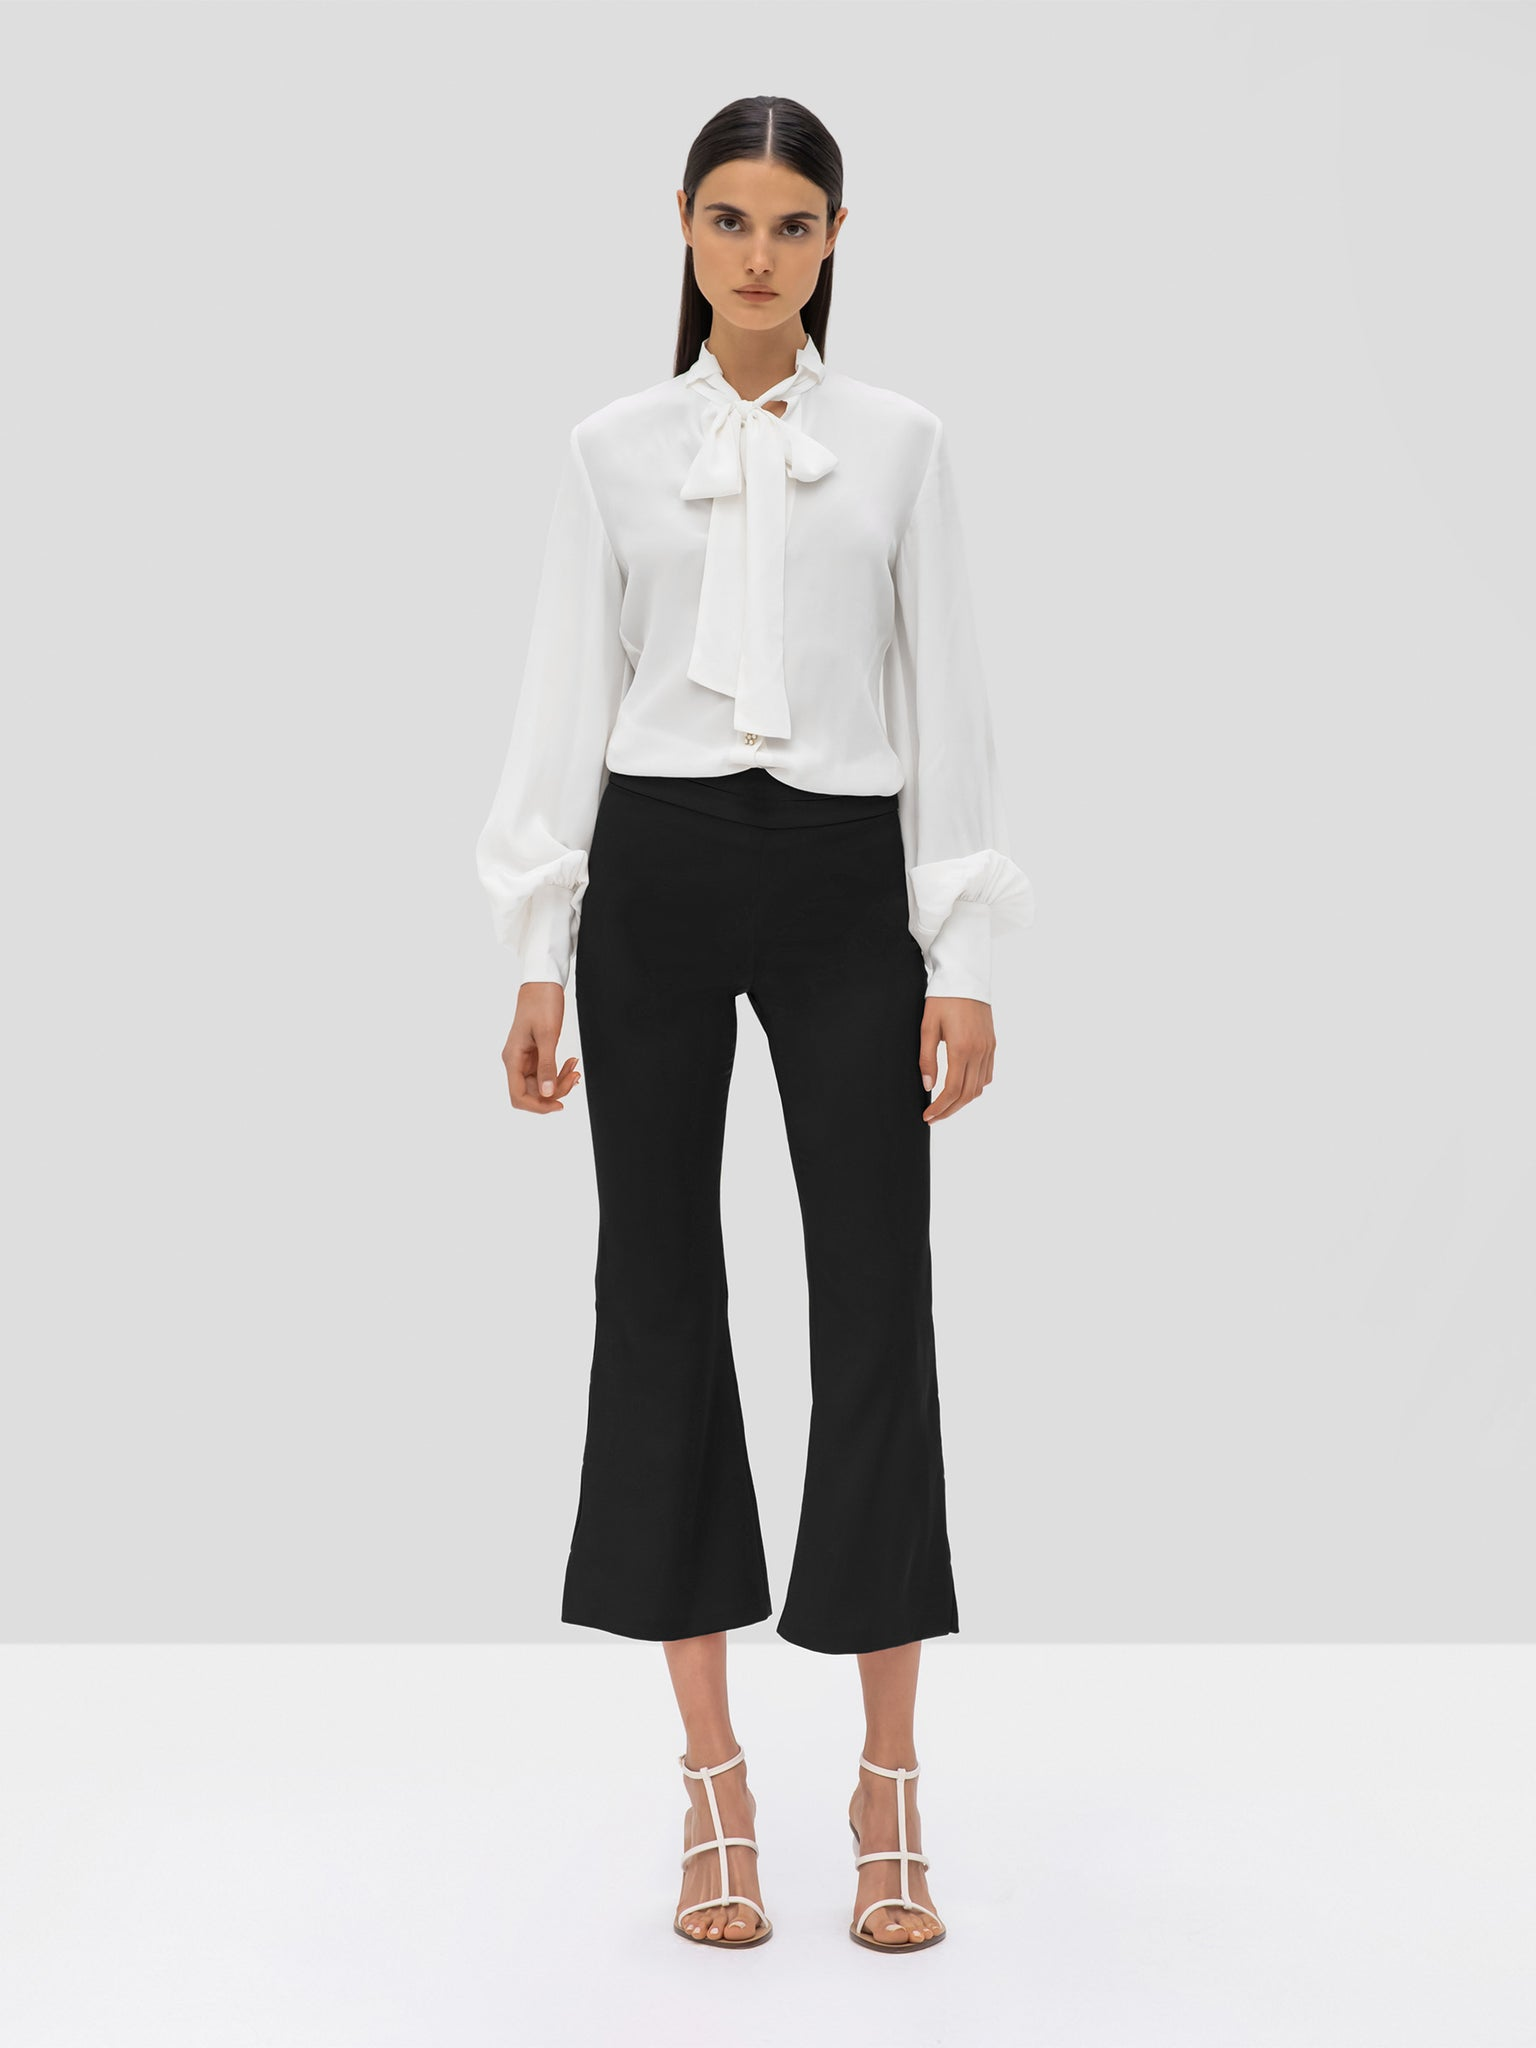 ALEXIS Aruca Top in white and Nadira Pant in Black from the Pre Fall 2019 Ready To Wear Collection